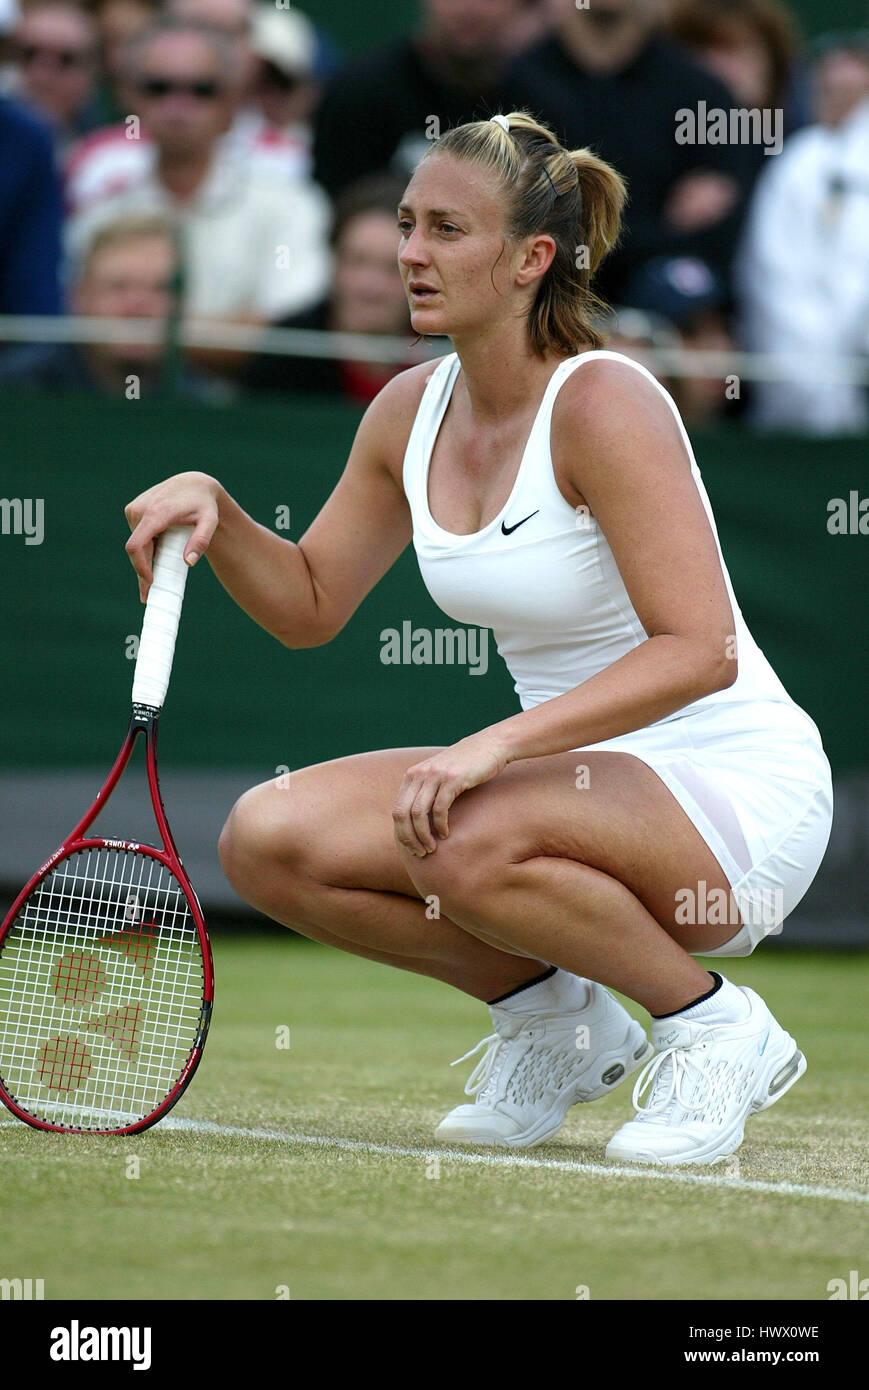 MARY PIERCE FRANCE WIMBLEDON WIMBLEDON LONDON 28 June 2002 Stock